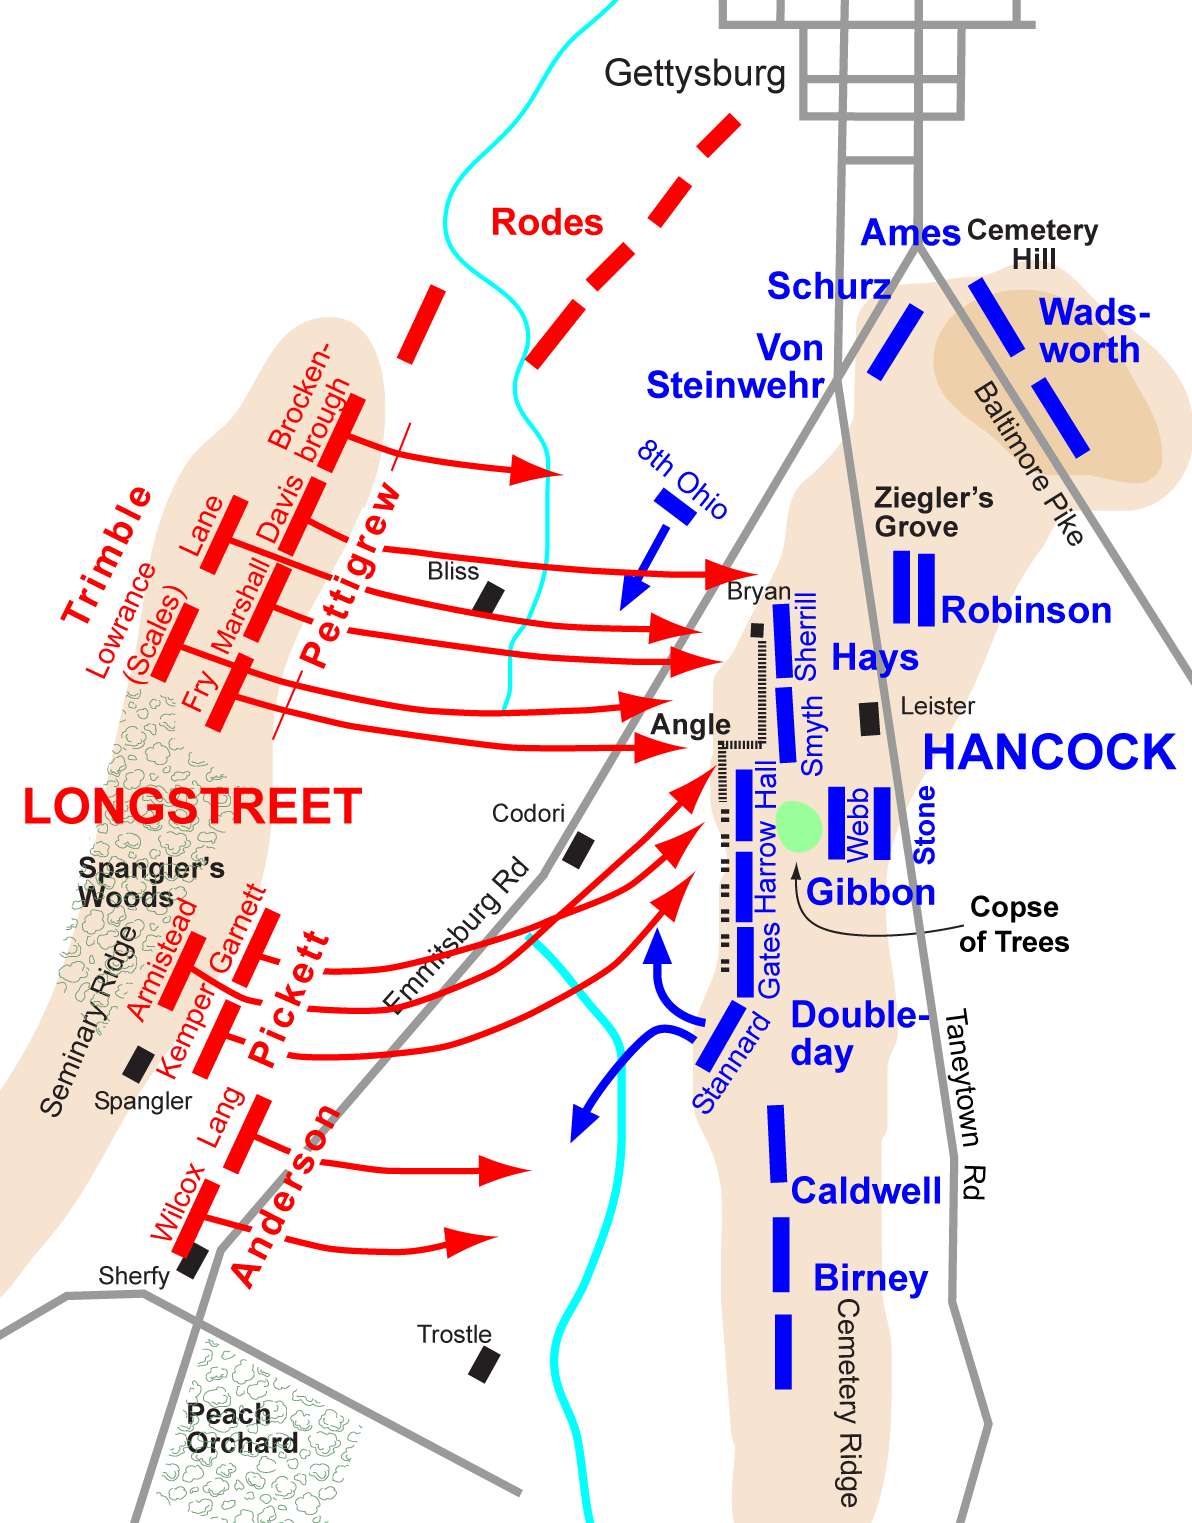 http://upload.wikimedia.org/wikipedia/commons/9/94/Picketts-Charge.png